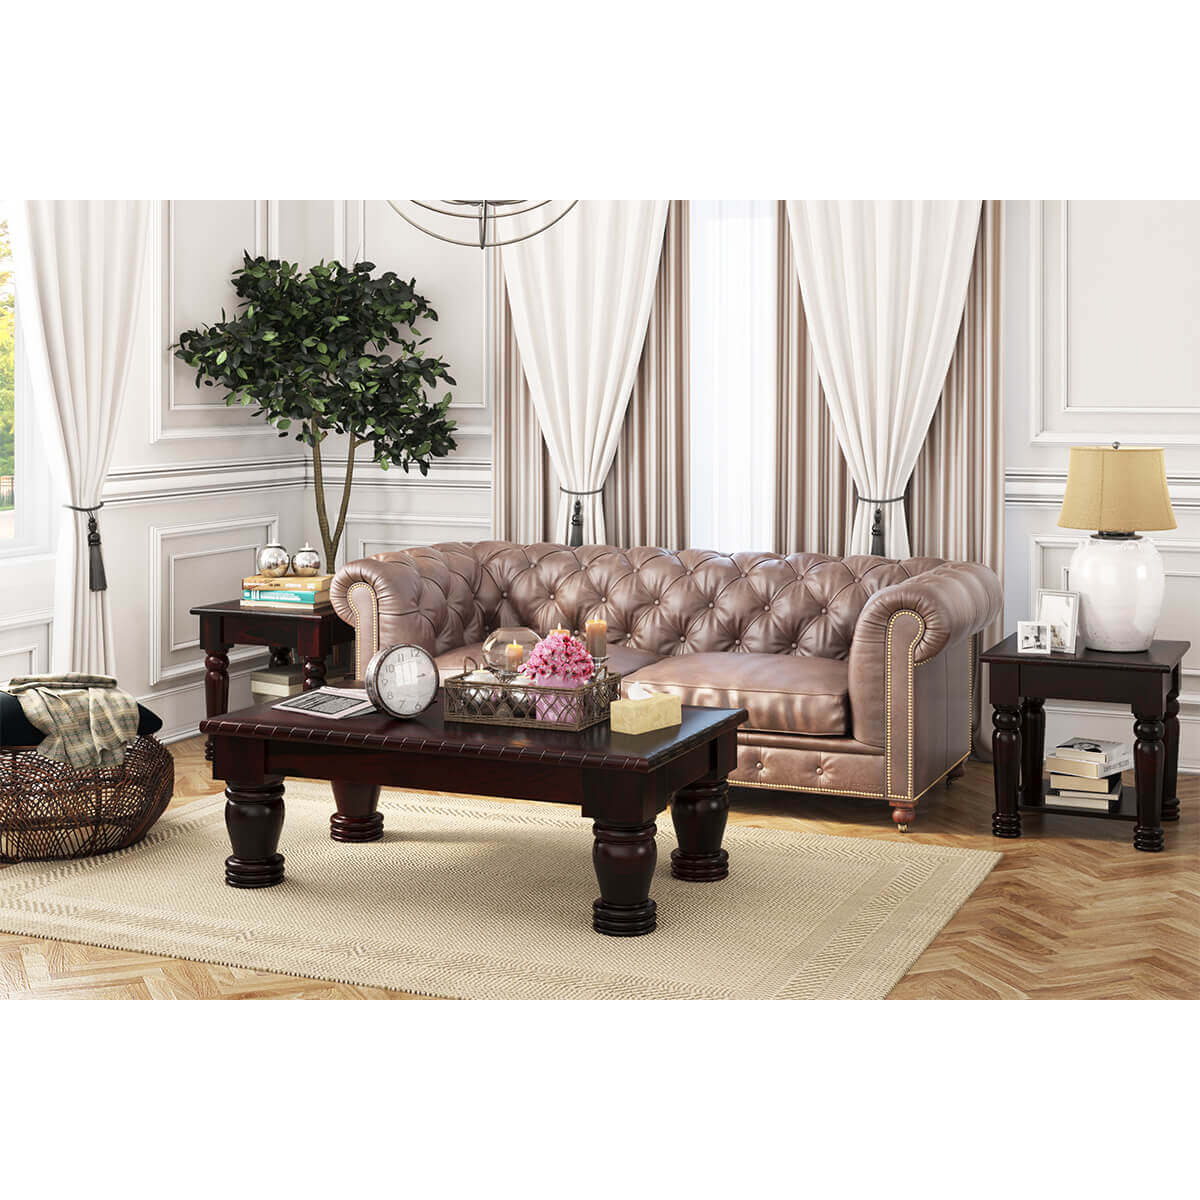 Vallecito Rustic Solid Wood 3 Piece Coffee Table Set